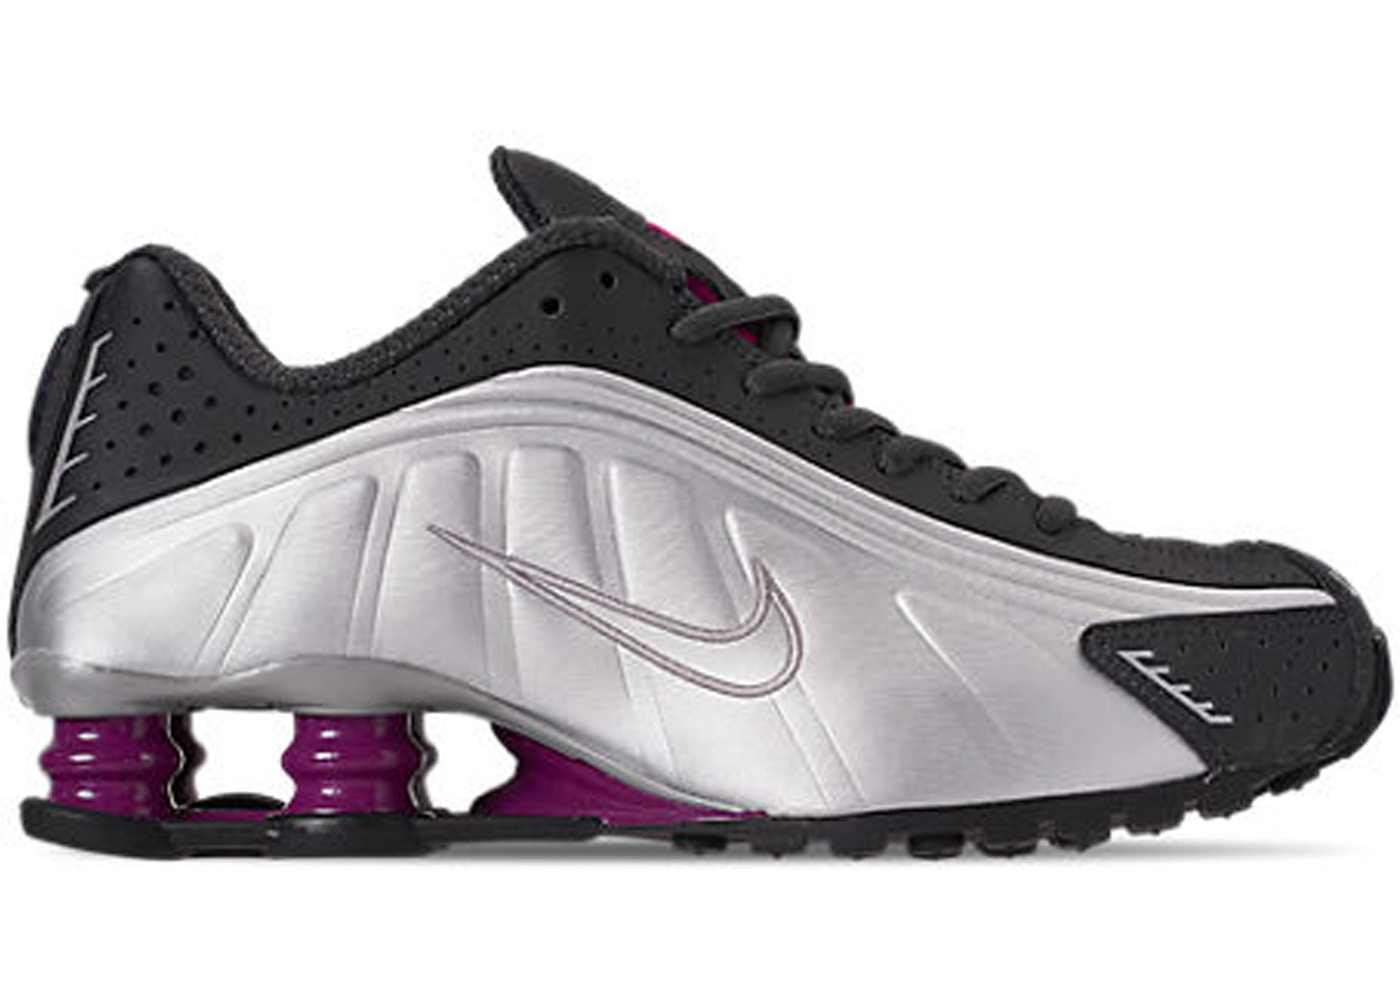 200db2e693cc Nike Shox R4 True Berry - AR3565-003